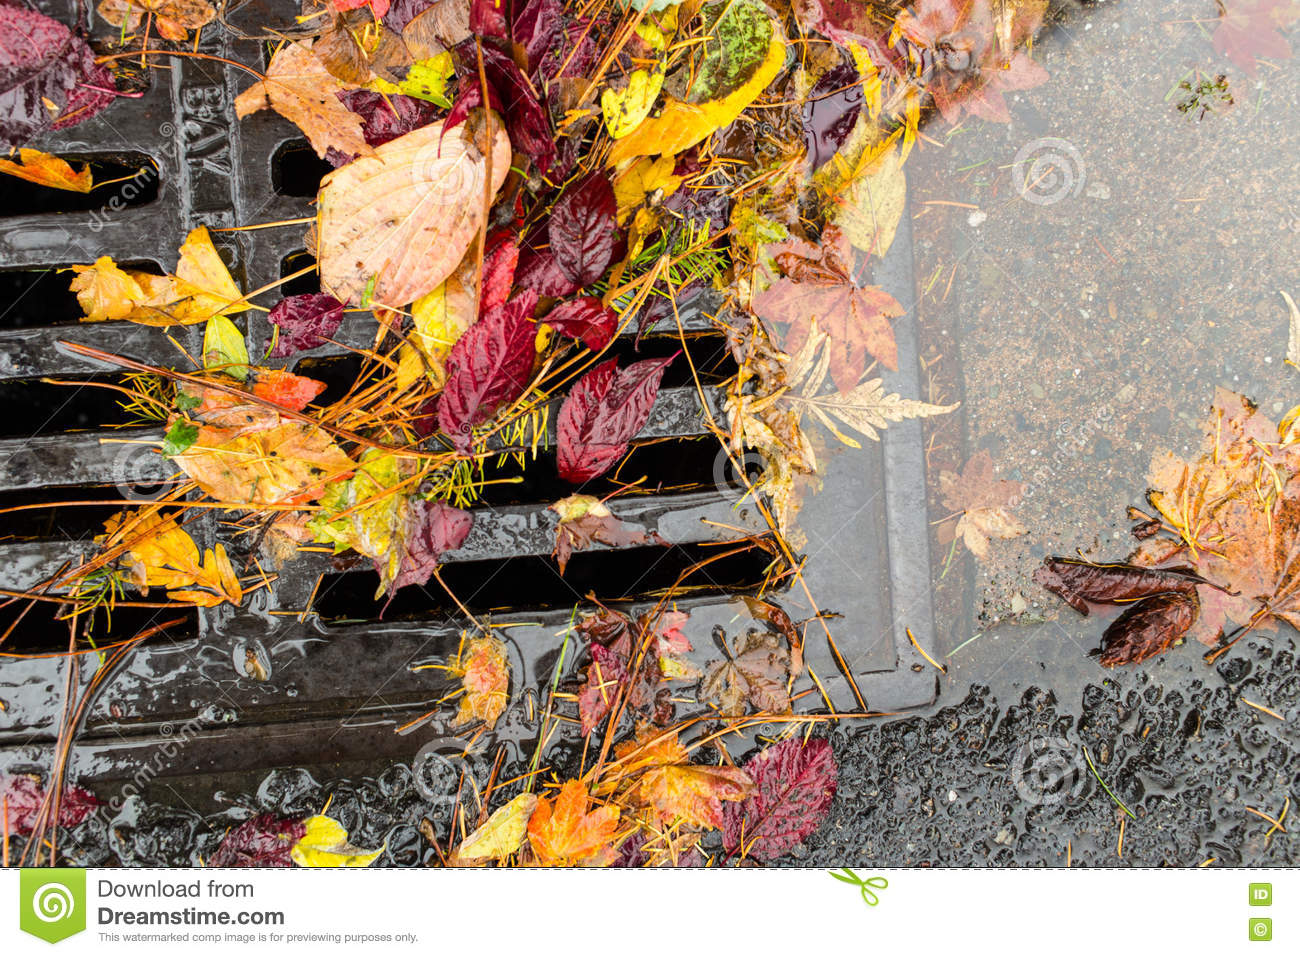 Multi colored leaves clogging a street drain